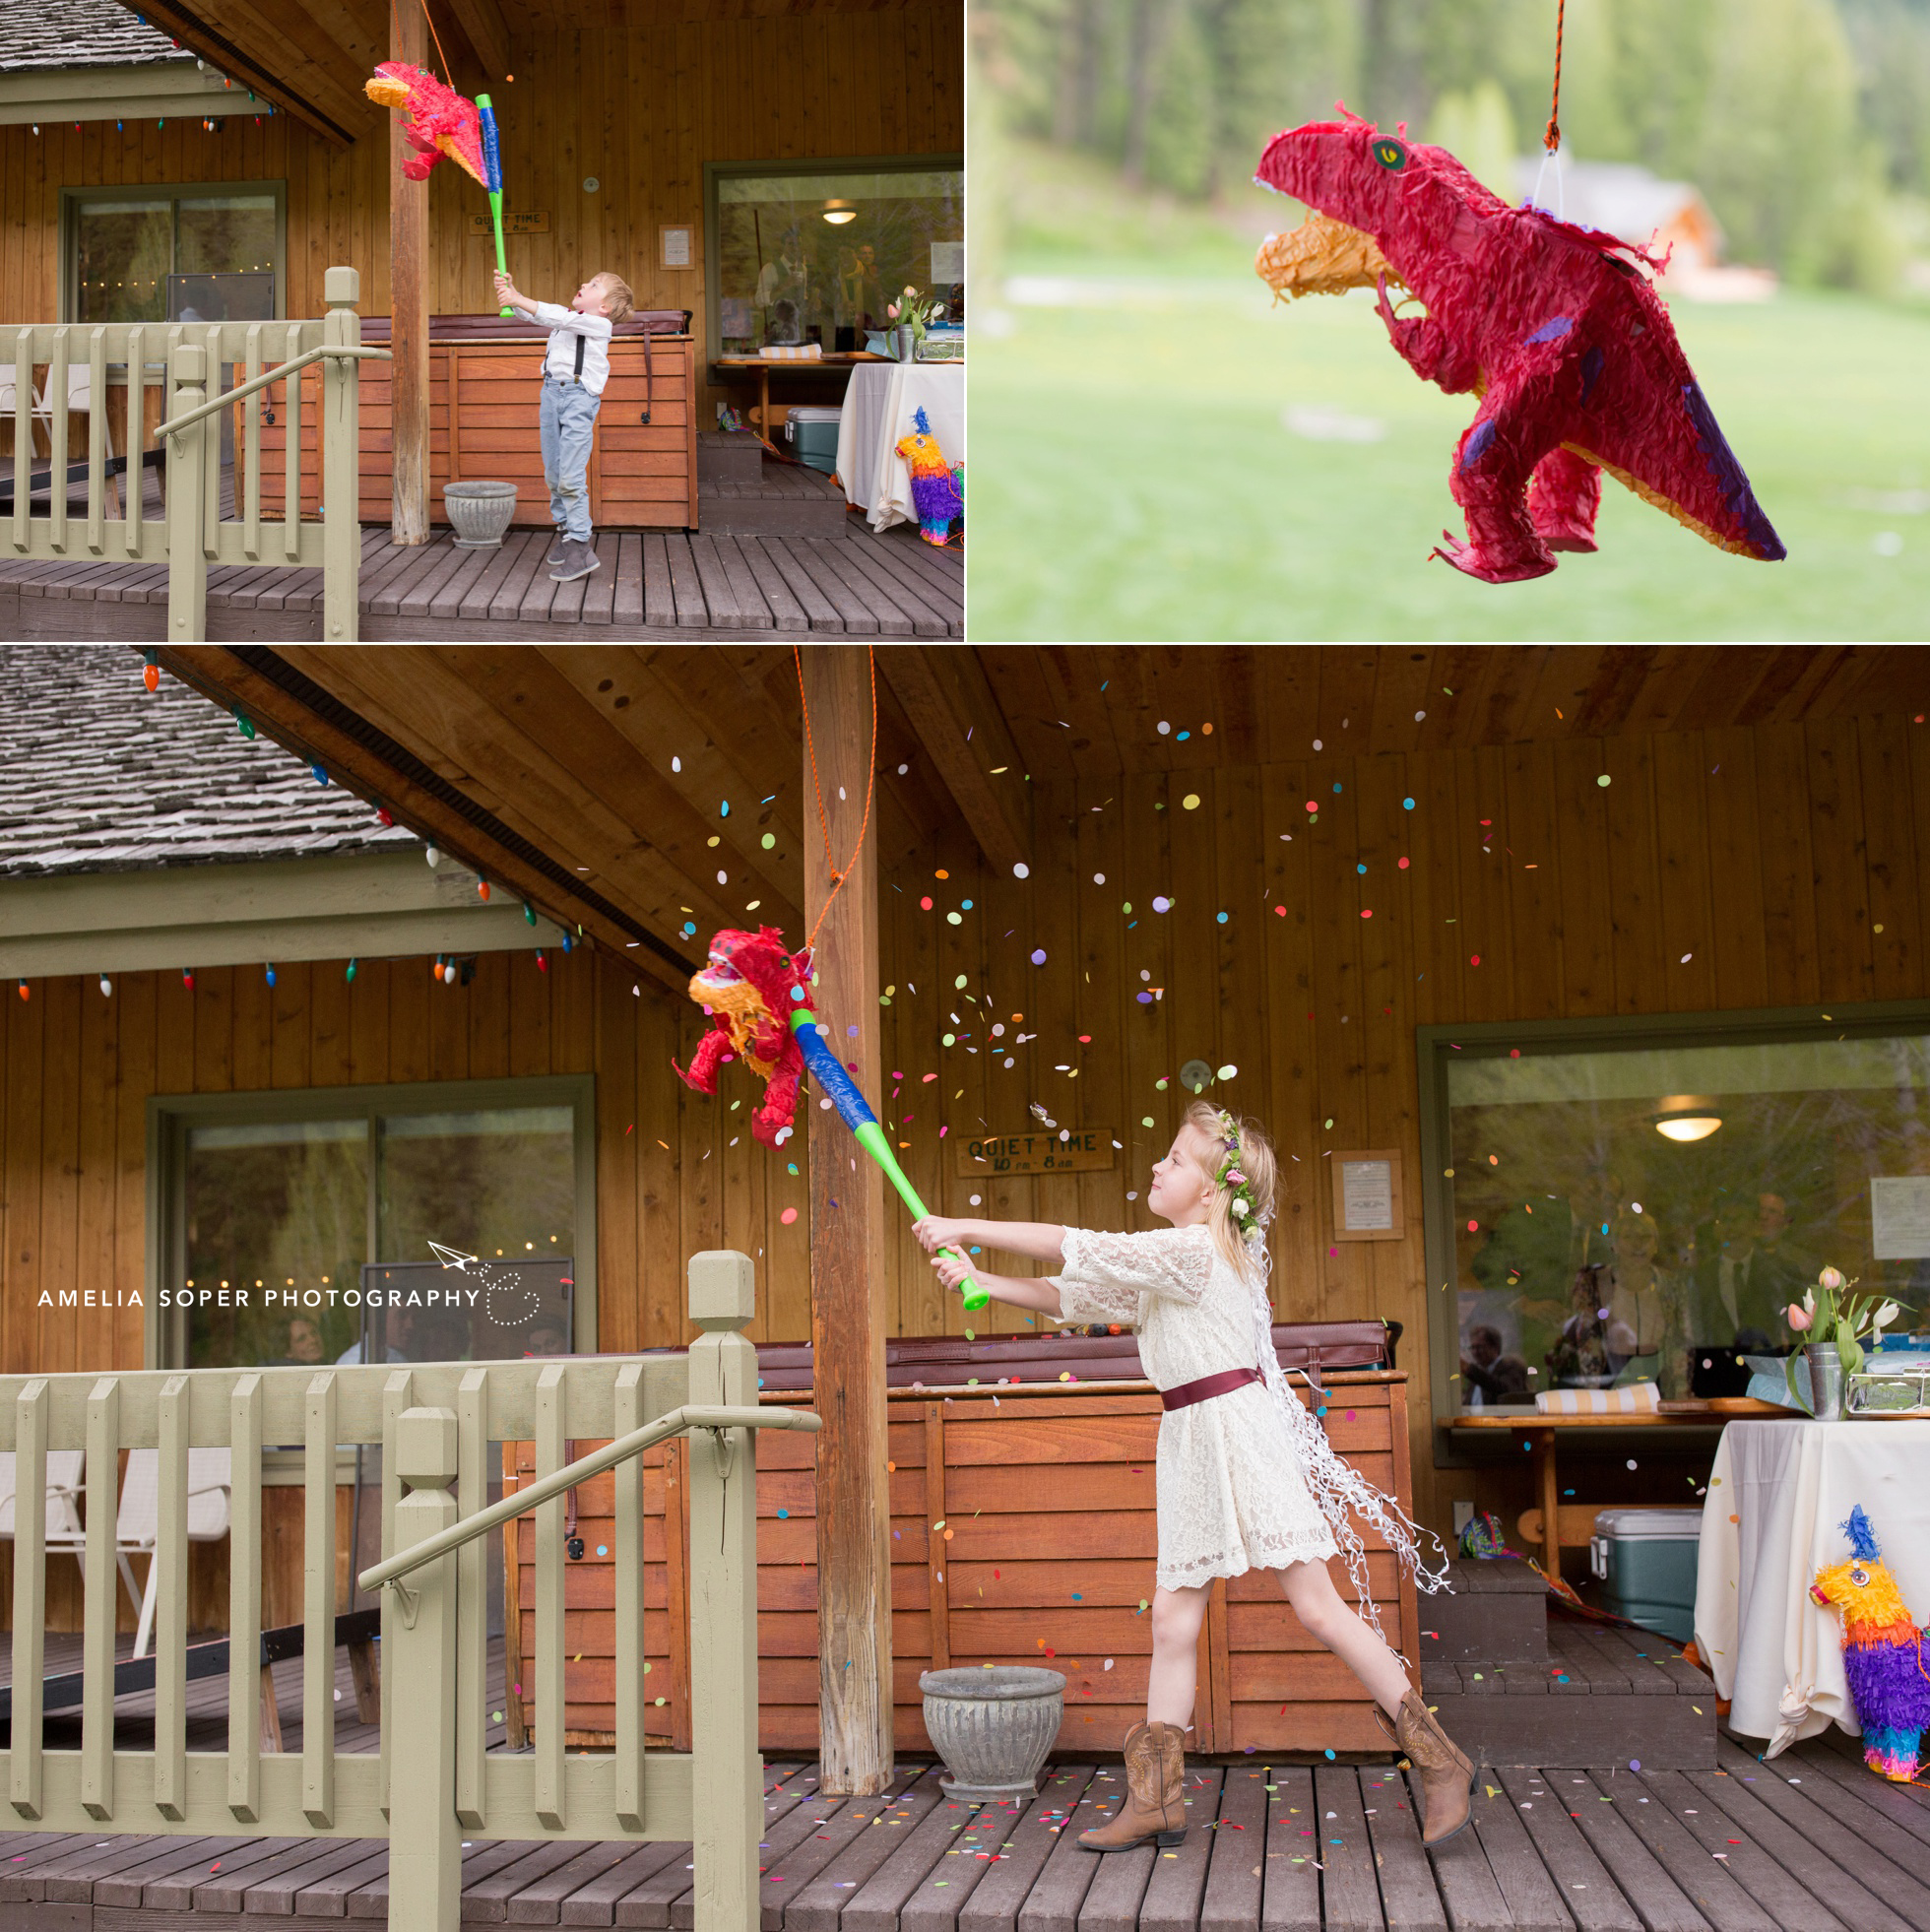 Pinata guest wedding fun at Mountain Springs Lodge wedding. Click to see more of this Leavenworth wedding in the PNW.